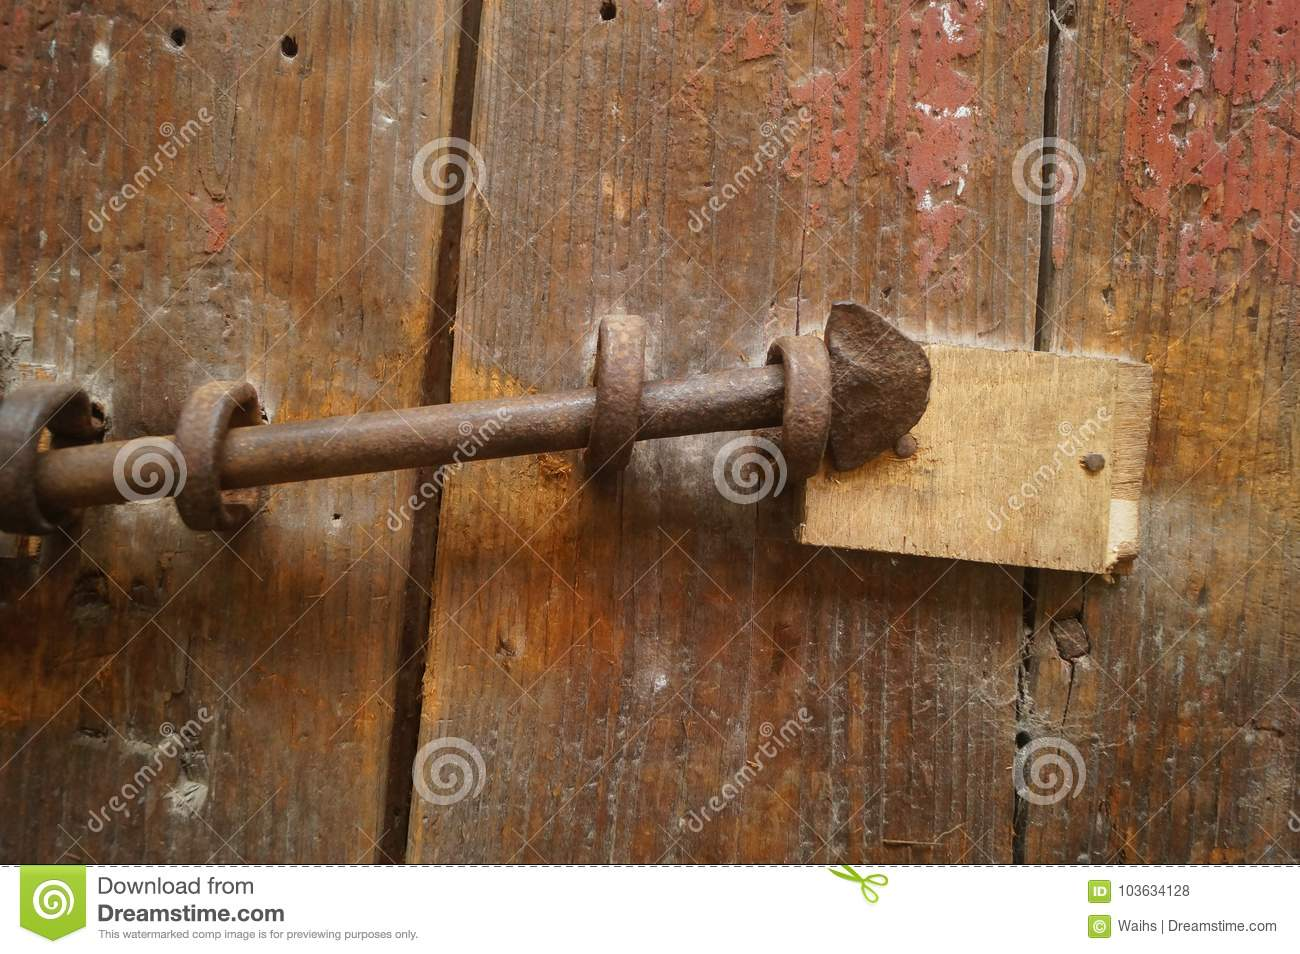 Wooden Doors And Locks In An Old House Stock Photo - Image